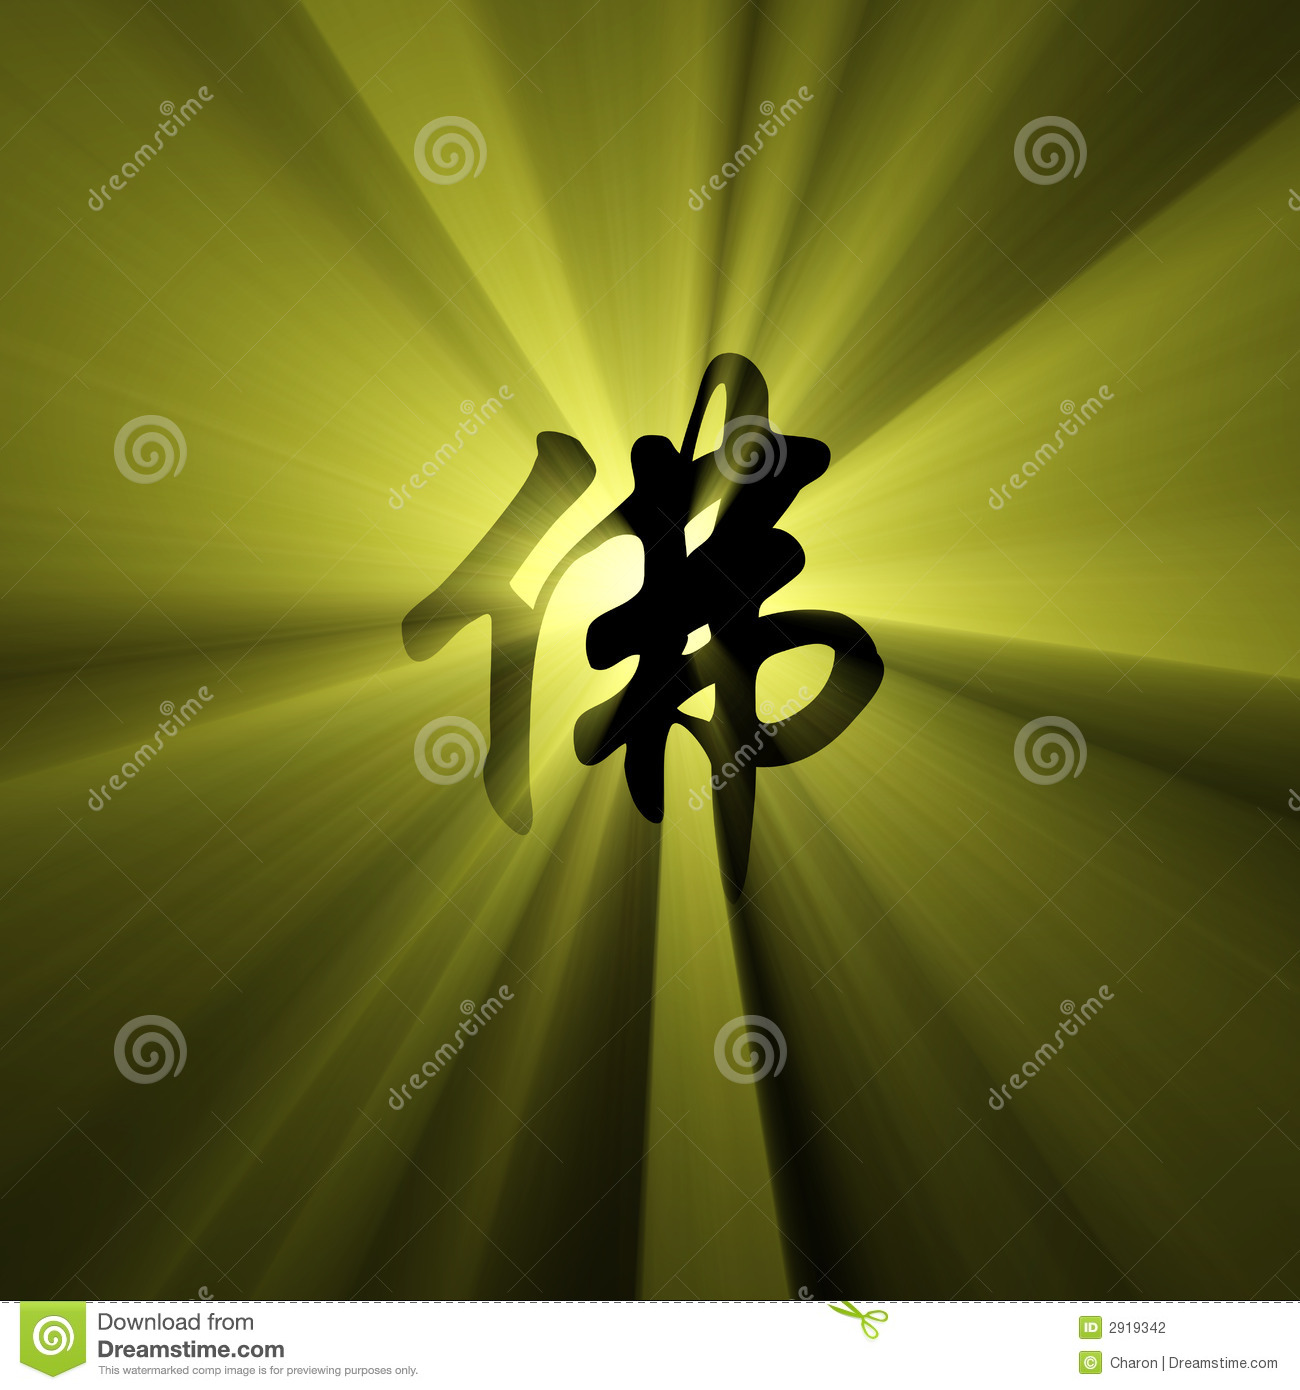 Buddha character sign light flare stock illustration buddha character sign light flare biocorpaavc Image collections